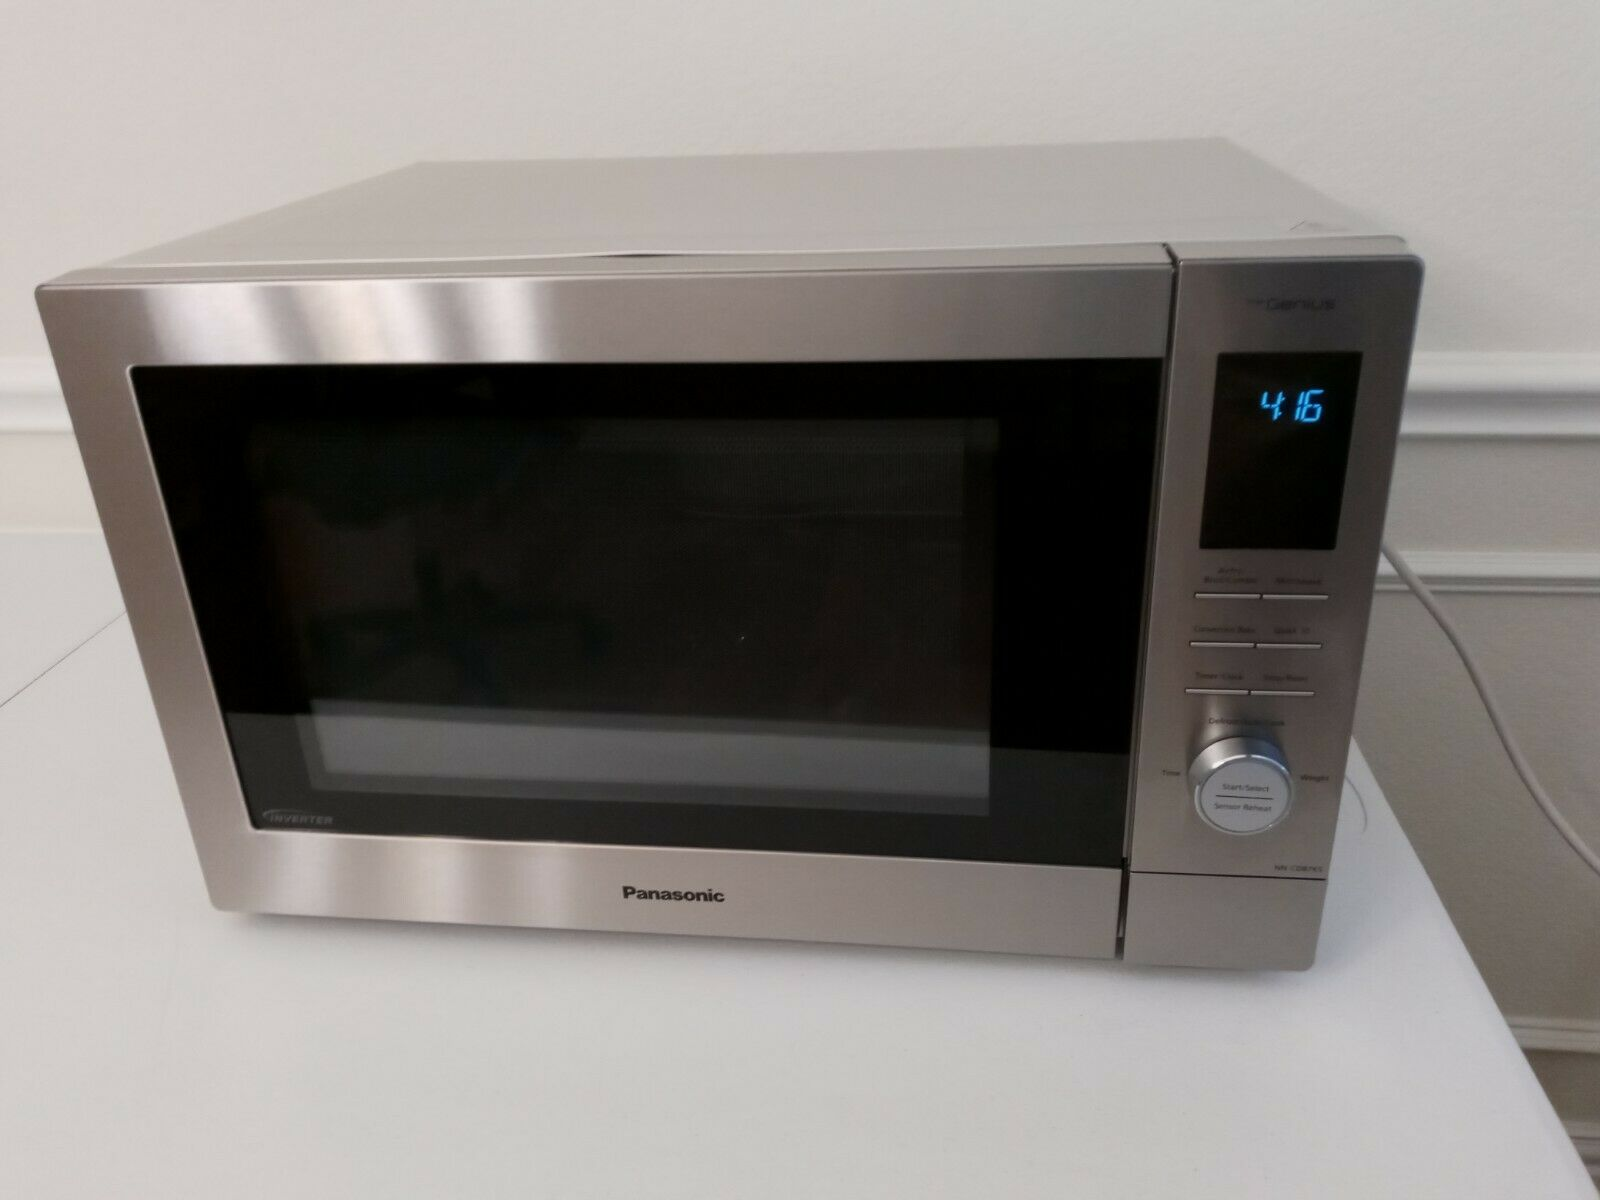 Panasonic HomeChef 4-in-1 Microwave Oven with Air Fryer, Con